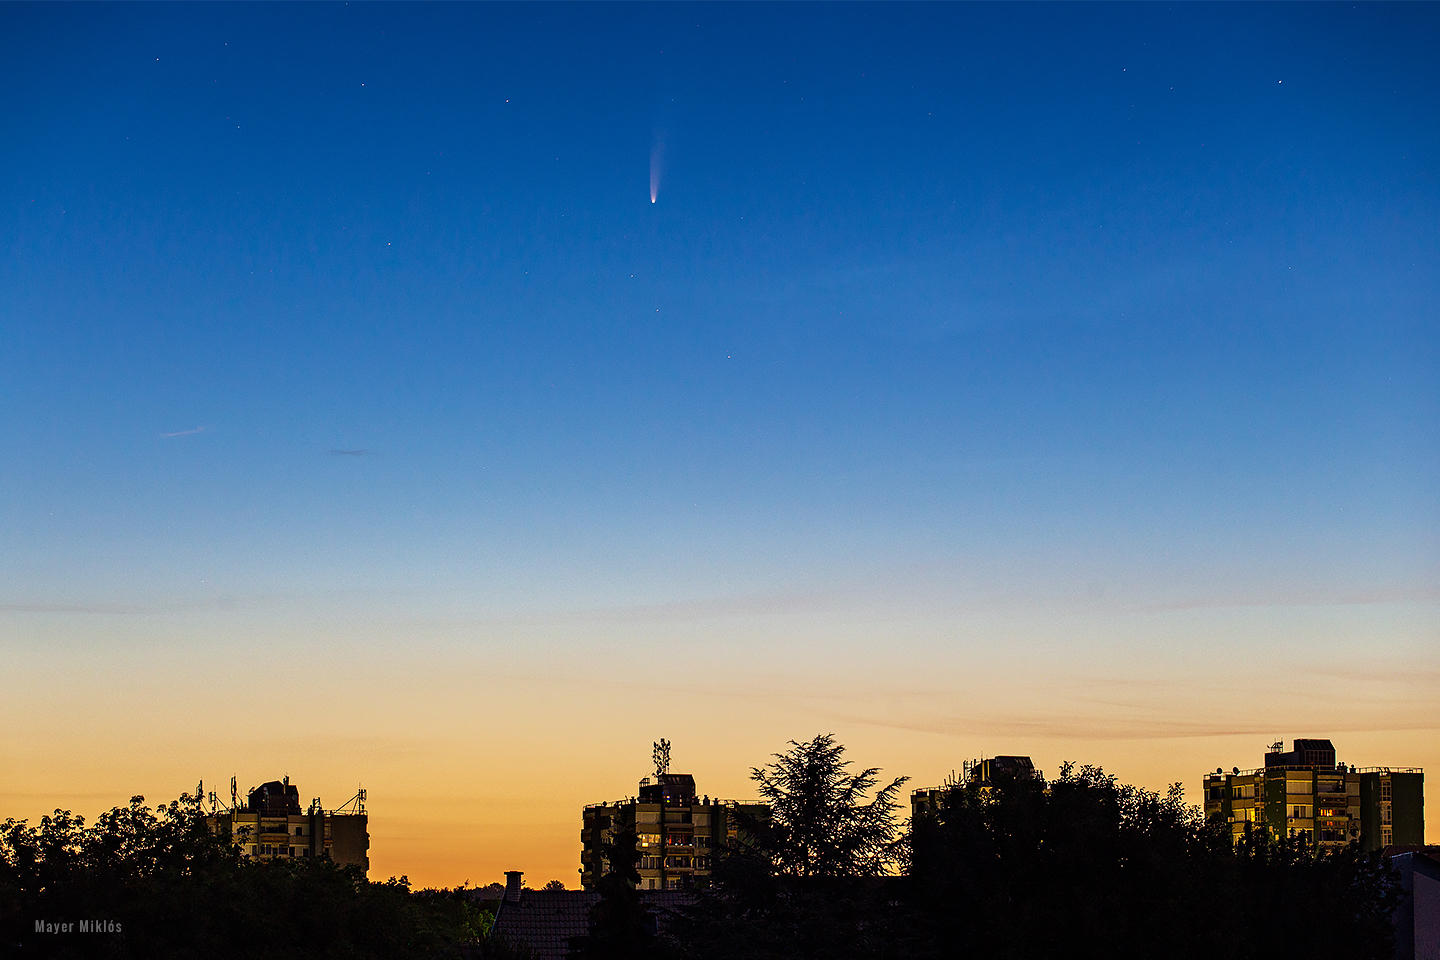 comet NEOWISE at dawn at blue sky